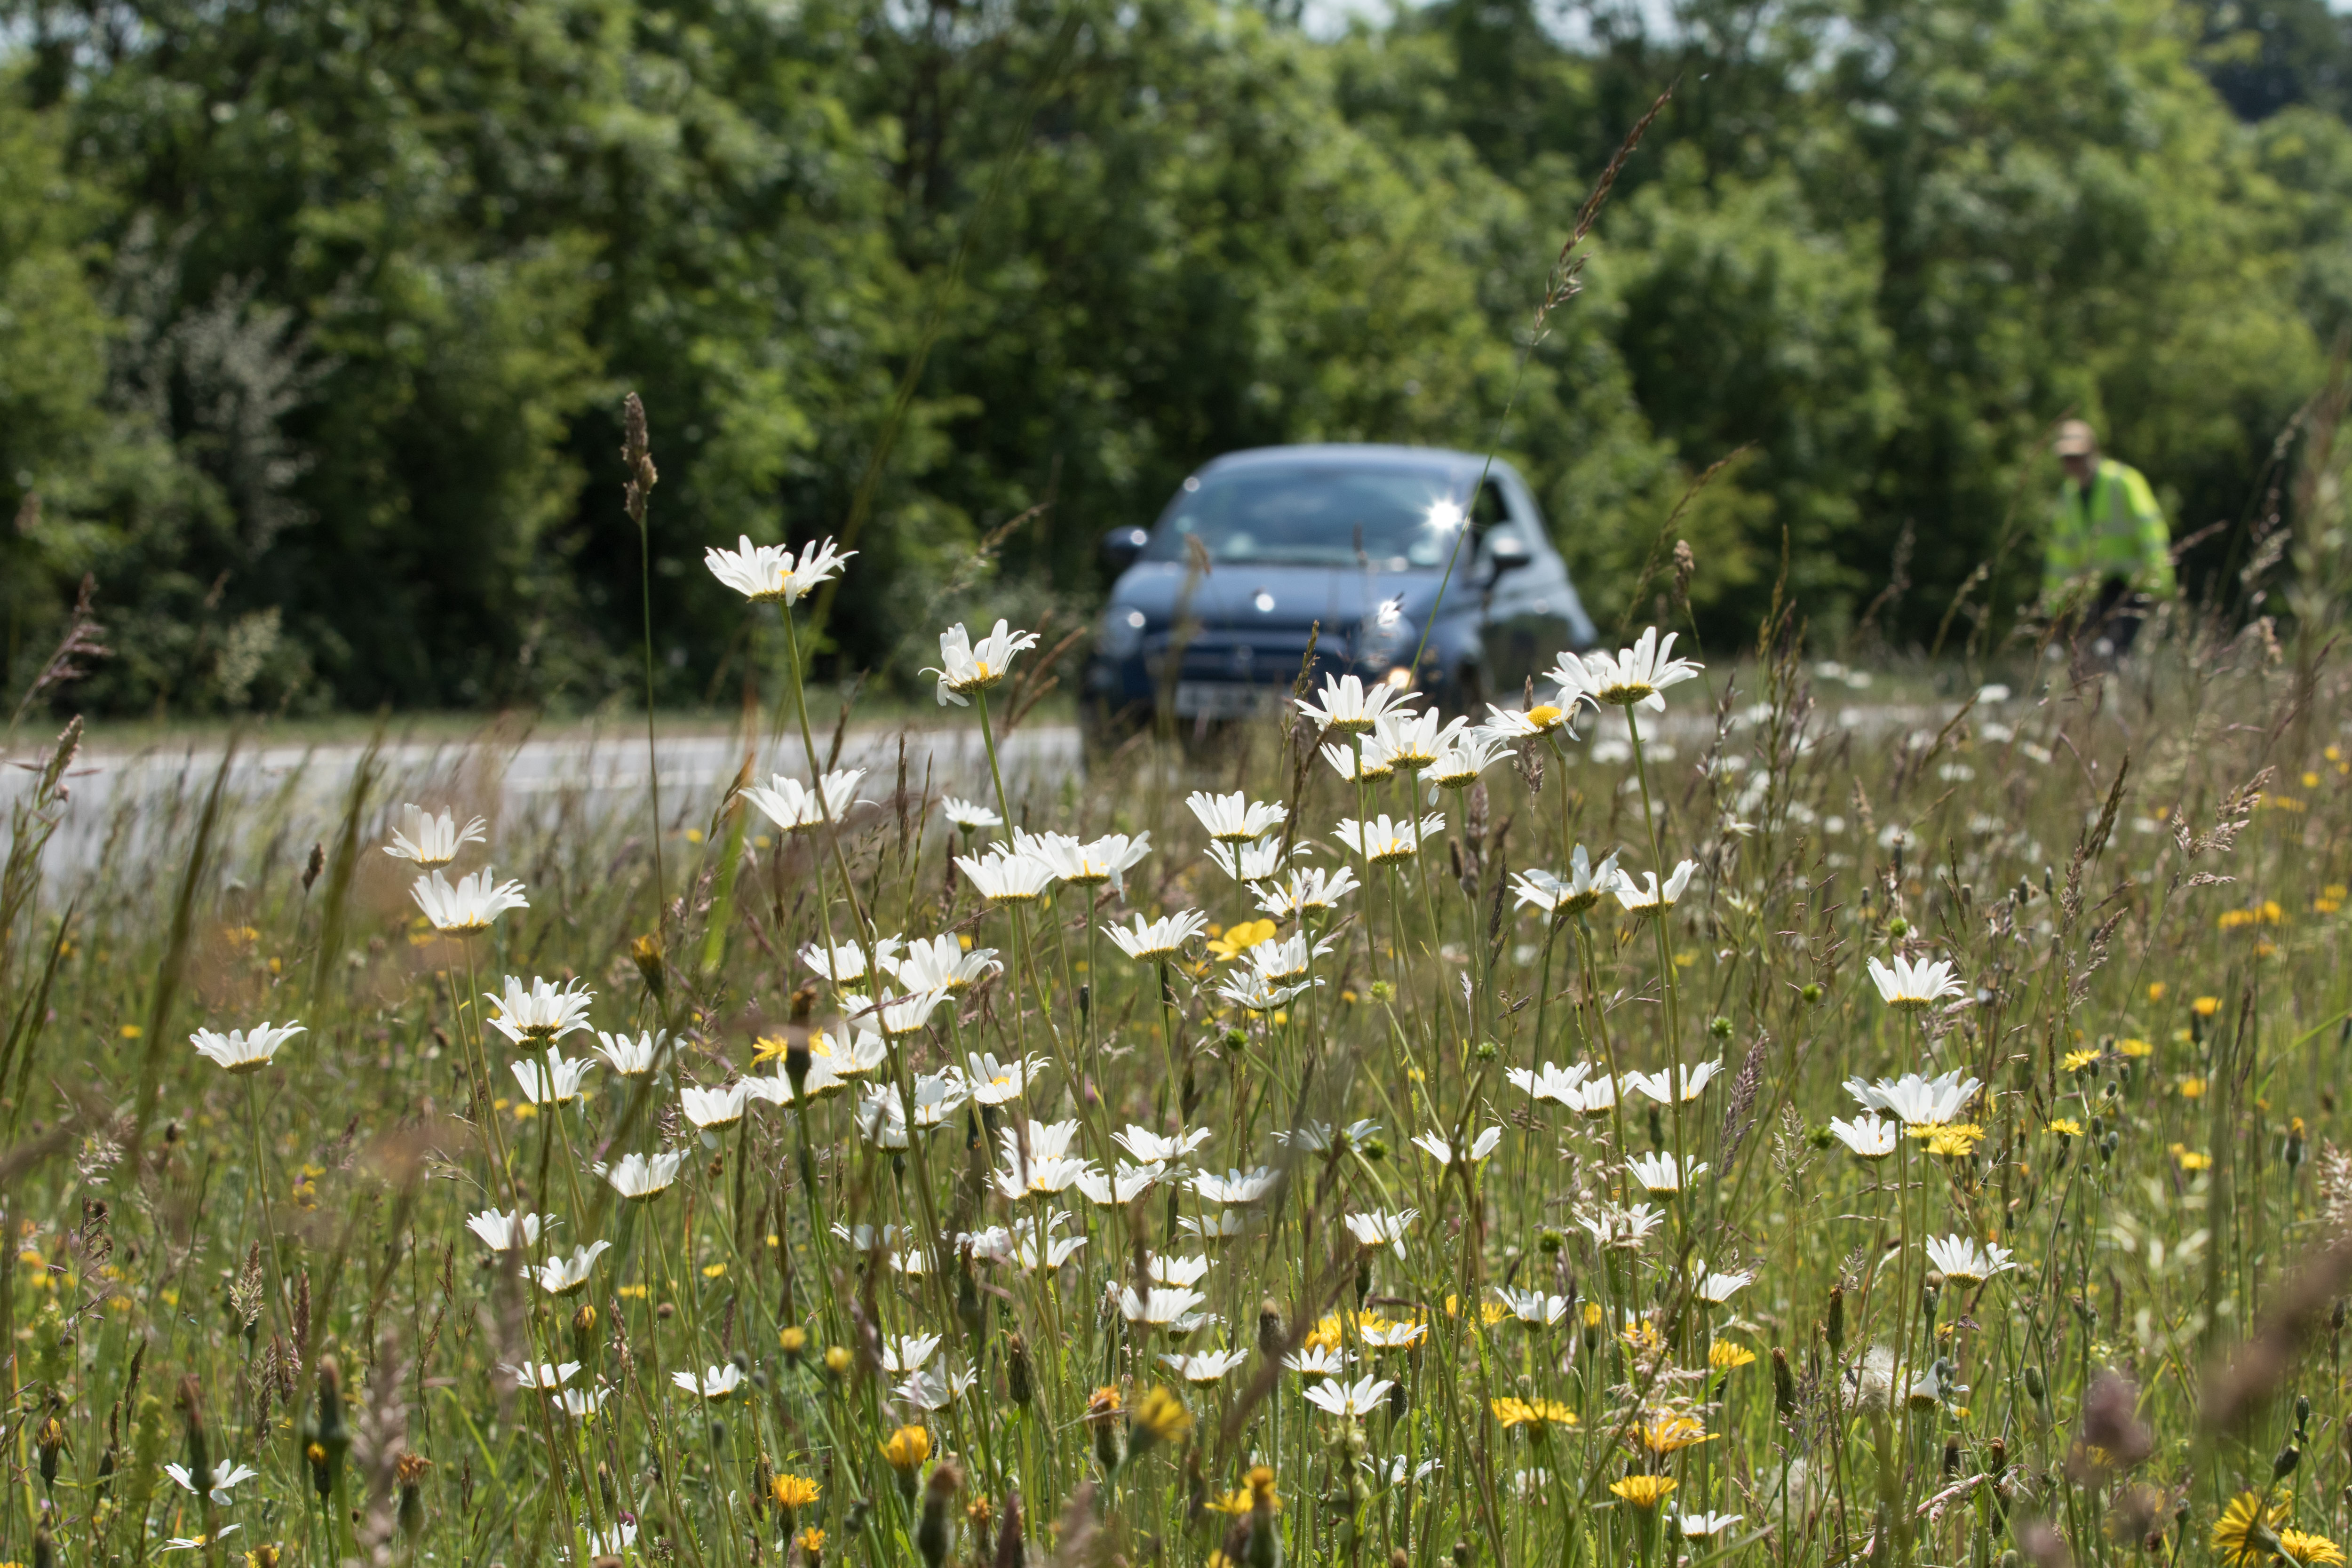 Flowers on a road verge (Joss Barratt/Plantlife/PA)